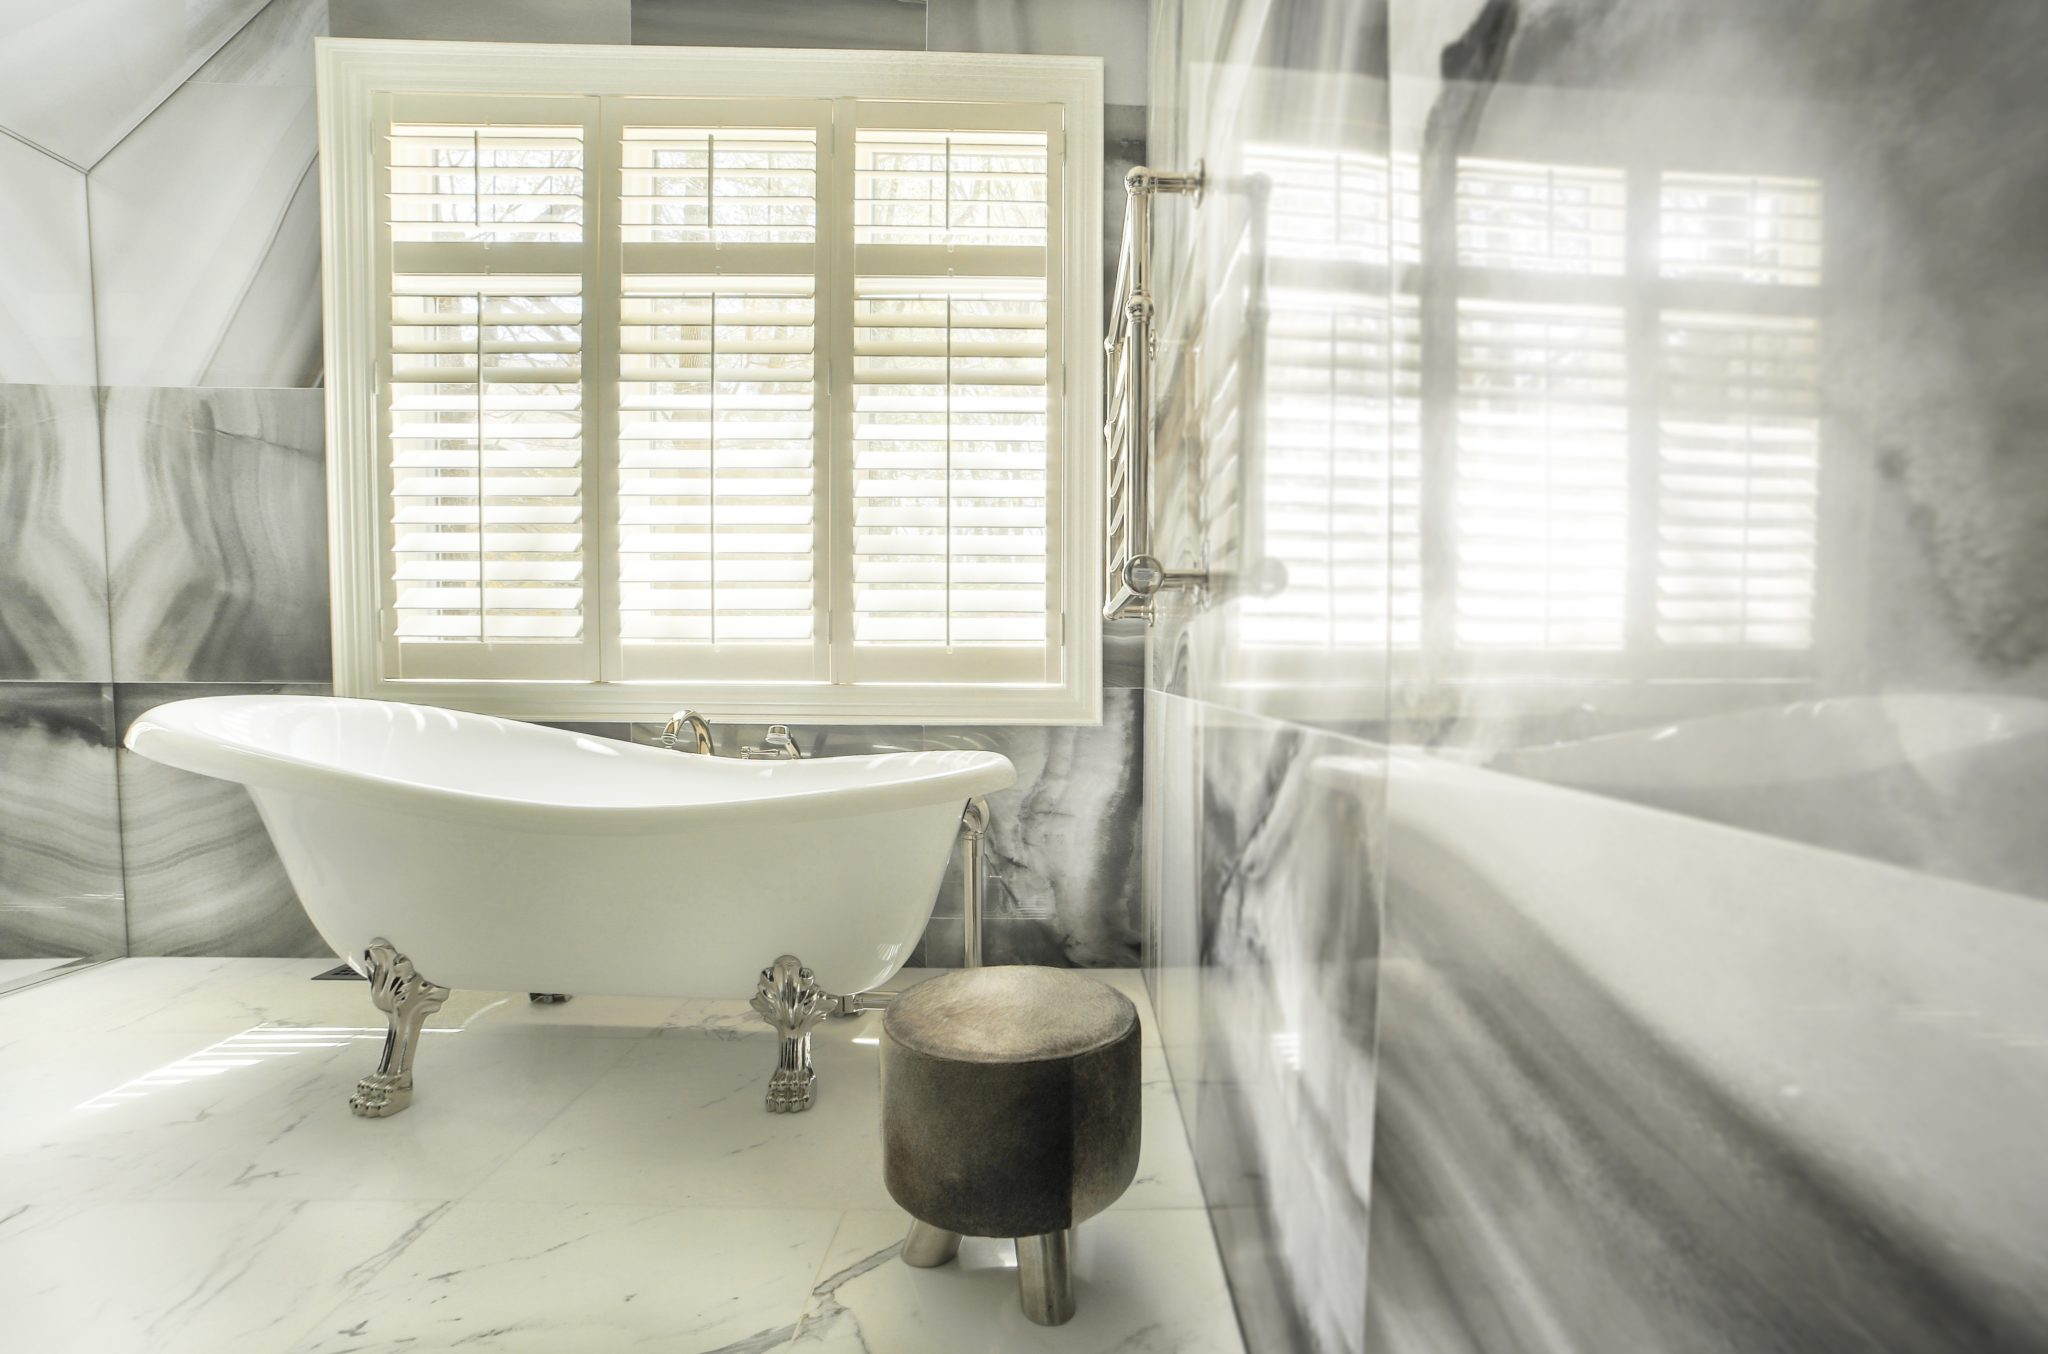 Exquisite materials in sophisticated master ensuite bathroom by Lucid Interior Design Inc.